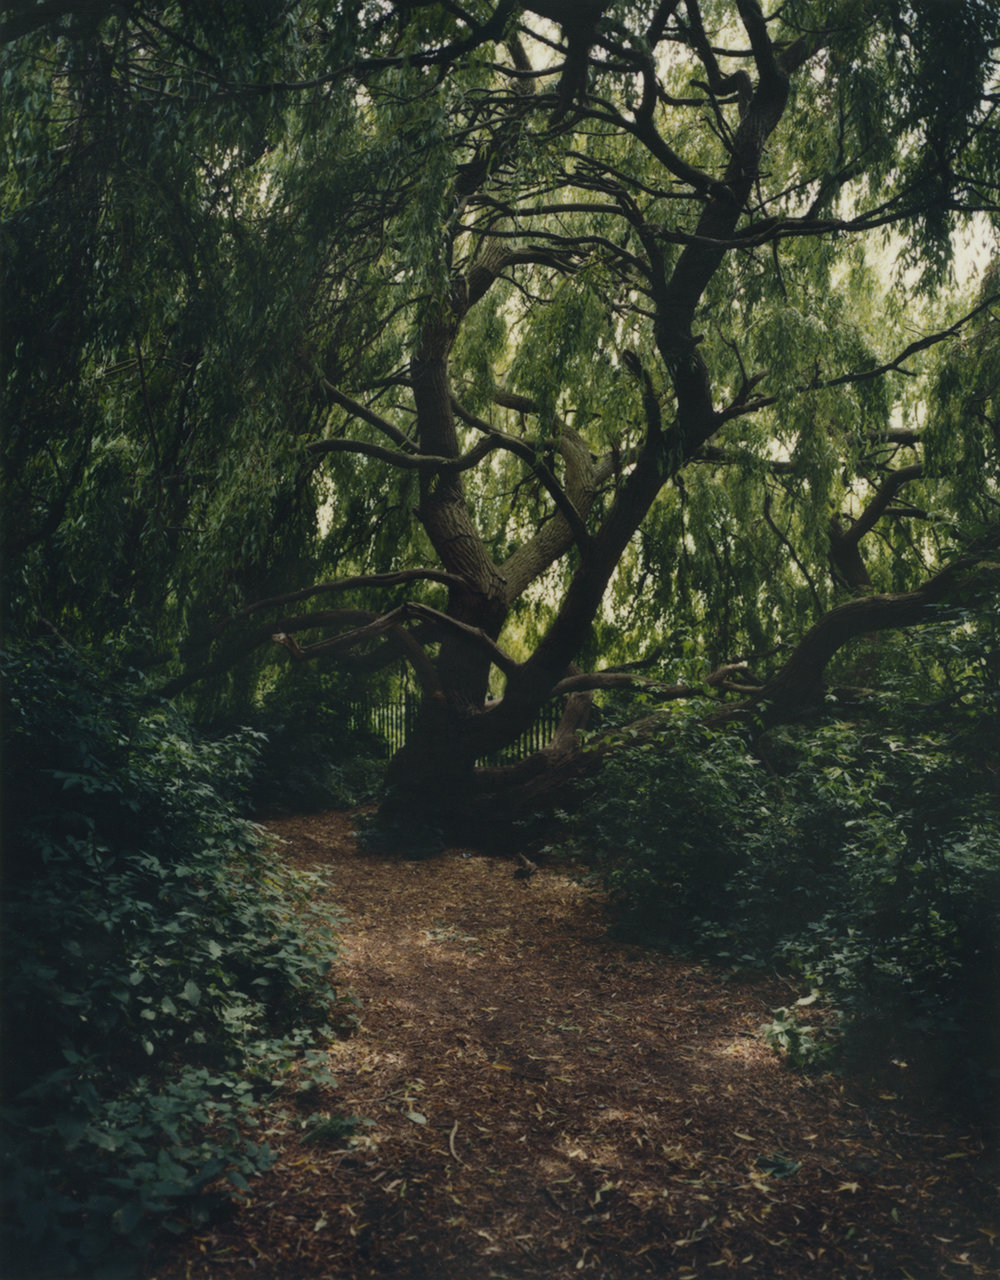 Leaning Tree  from the series  Inside the Spider ,  Suzie Howell